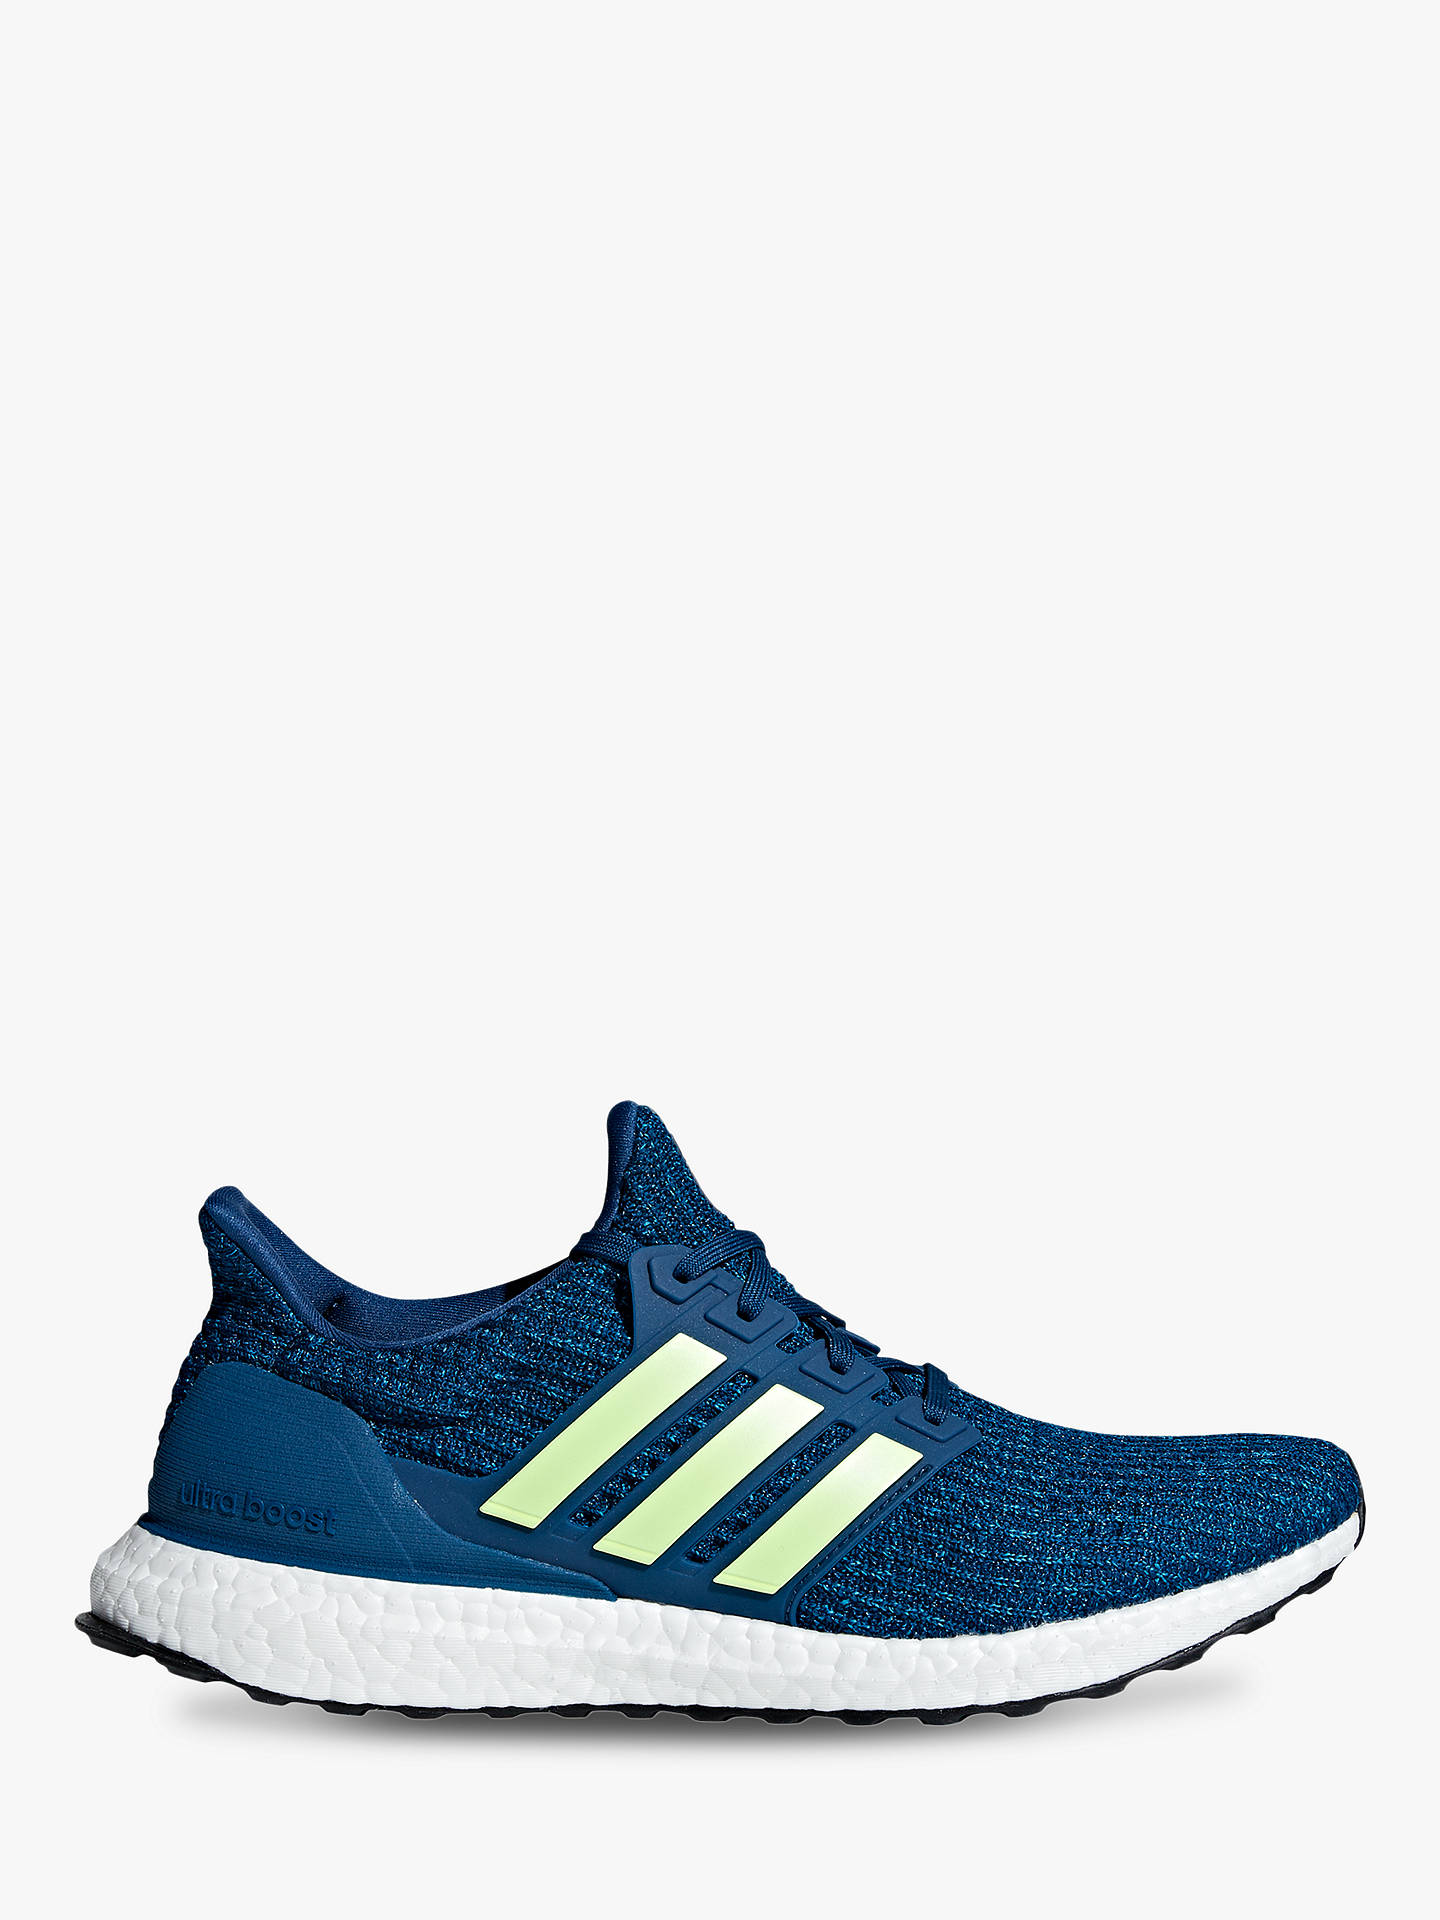 adidas UltraBOOST Men's Running Shoes at John Lewis & Partners